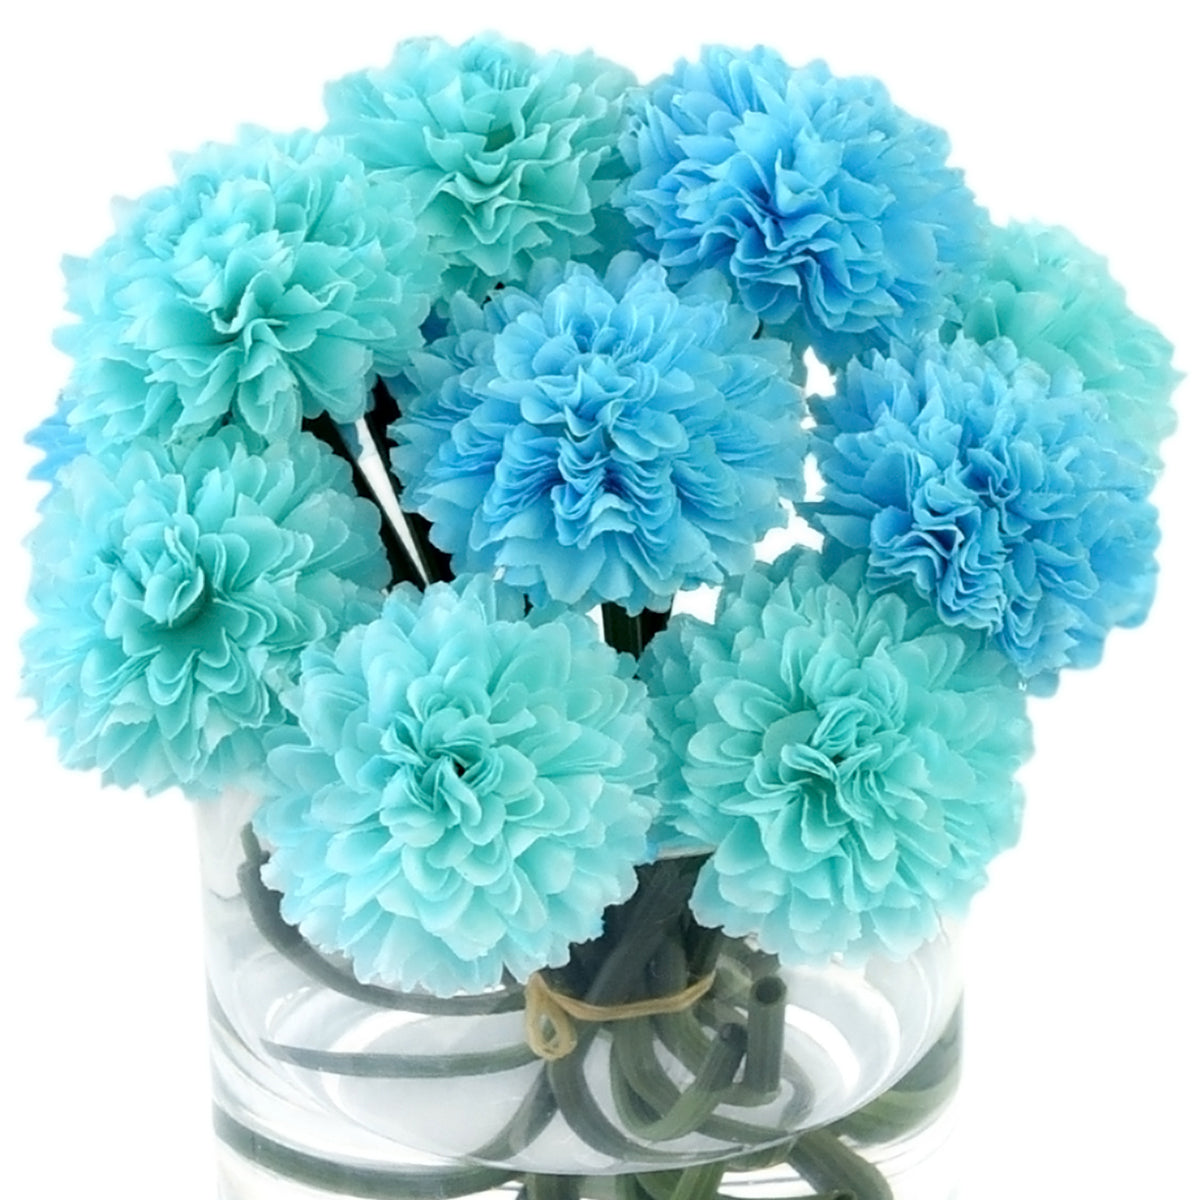 Faux Blue Chrysanthemum in a glass vase with water